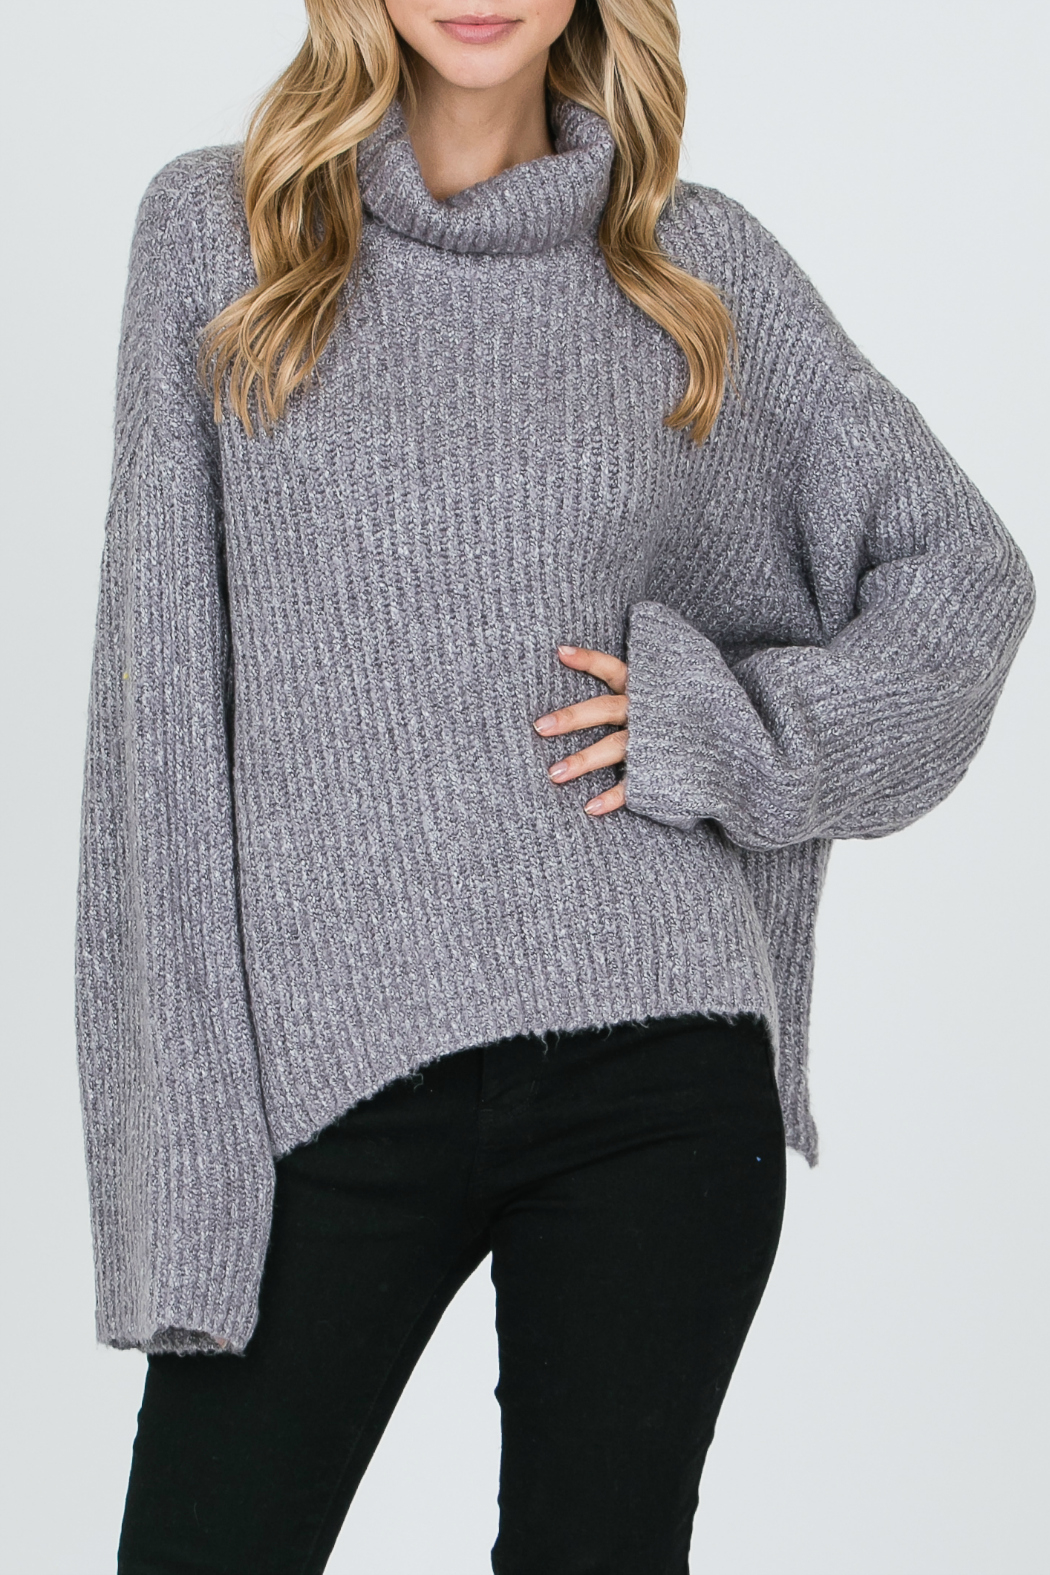 Allie Rose Turtleneck Sweater - Main Image